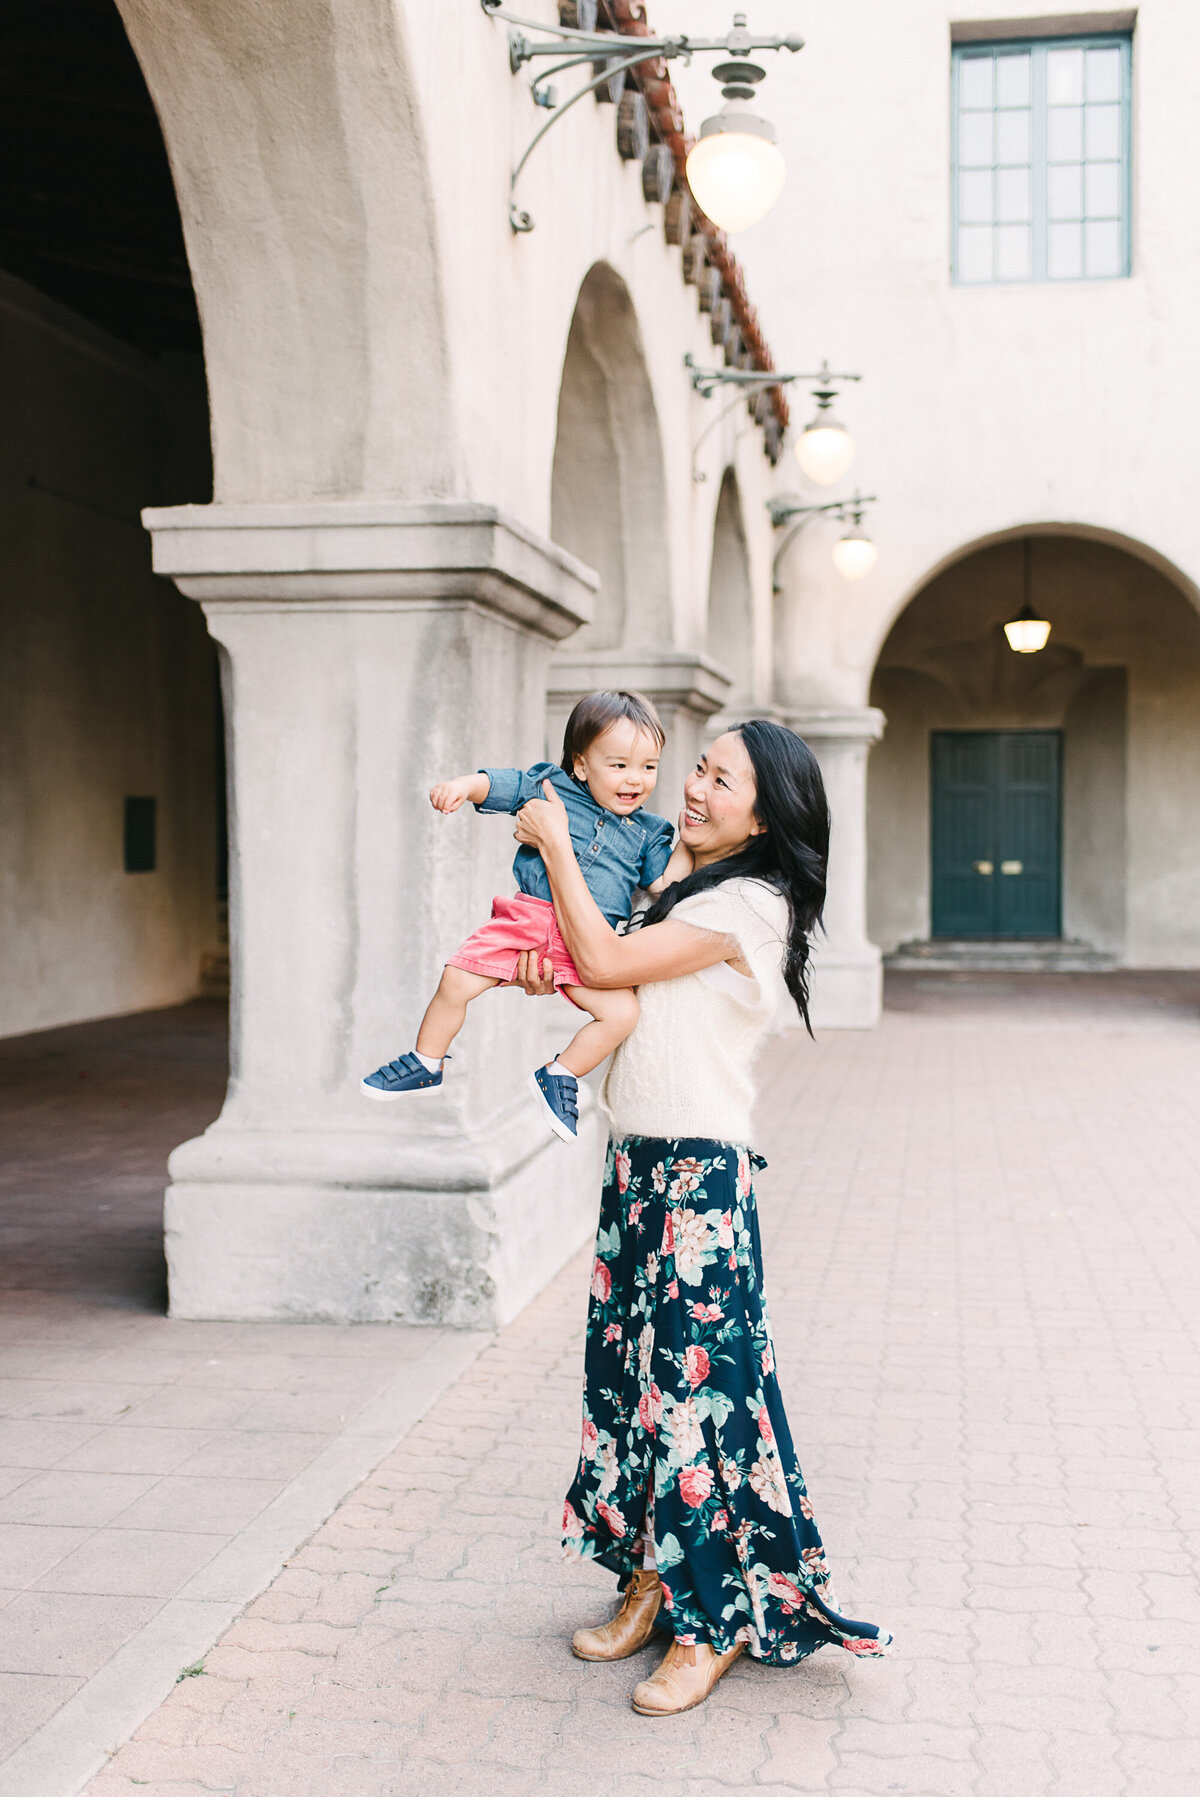 Balboa Park Family Photographer-swing me142